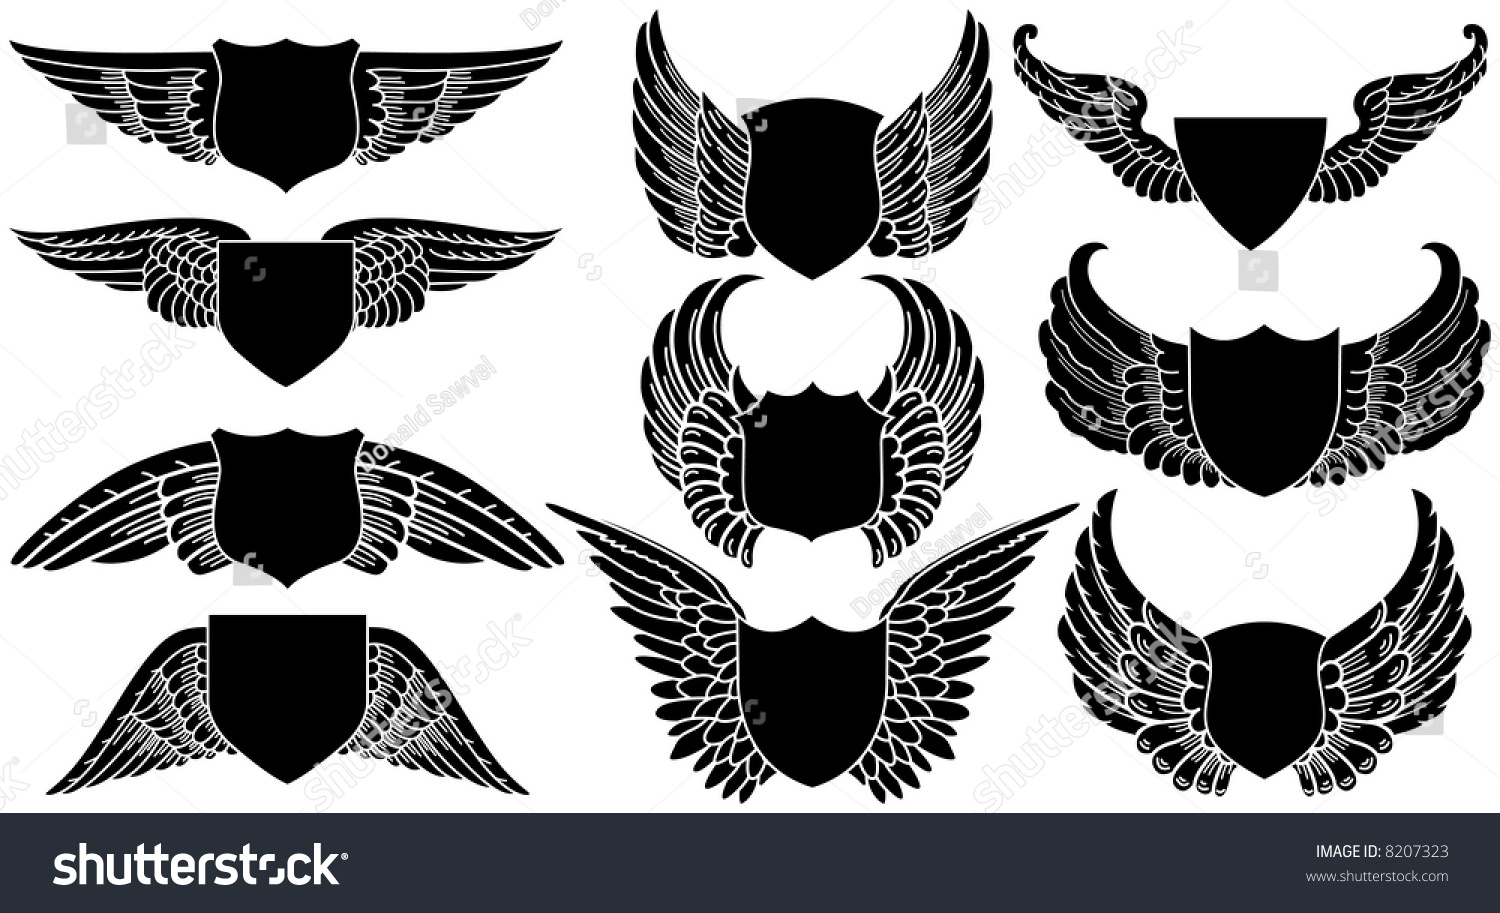 Shields with wings create your own logo stock vector for Draw my own logo